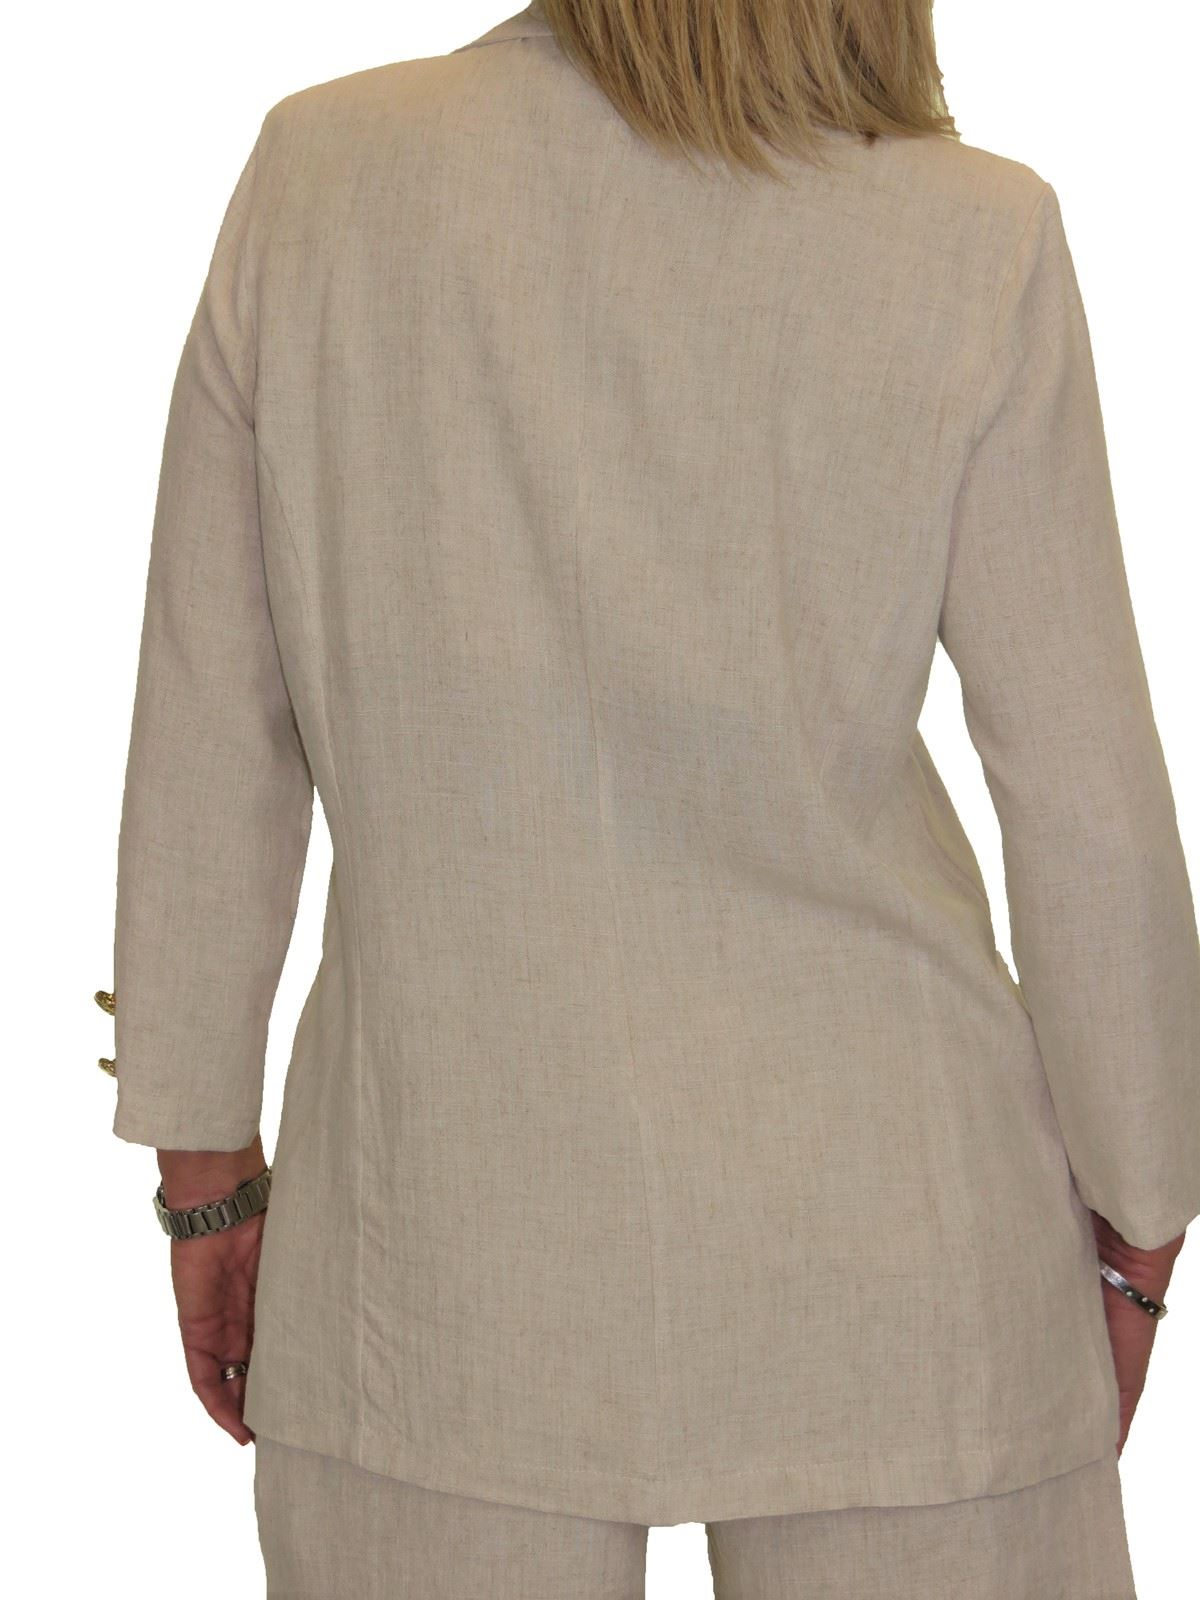 Ladies Open Front Soft Linen Lightweight Jacket 10-22